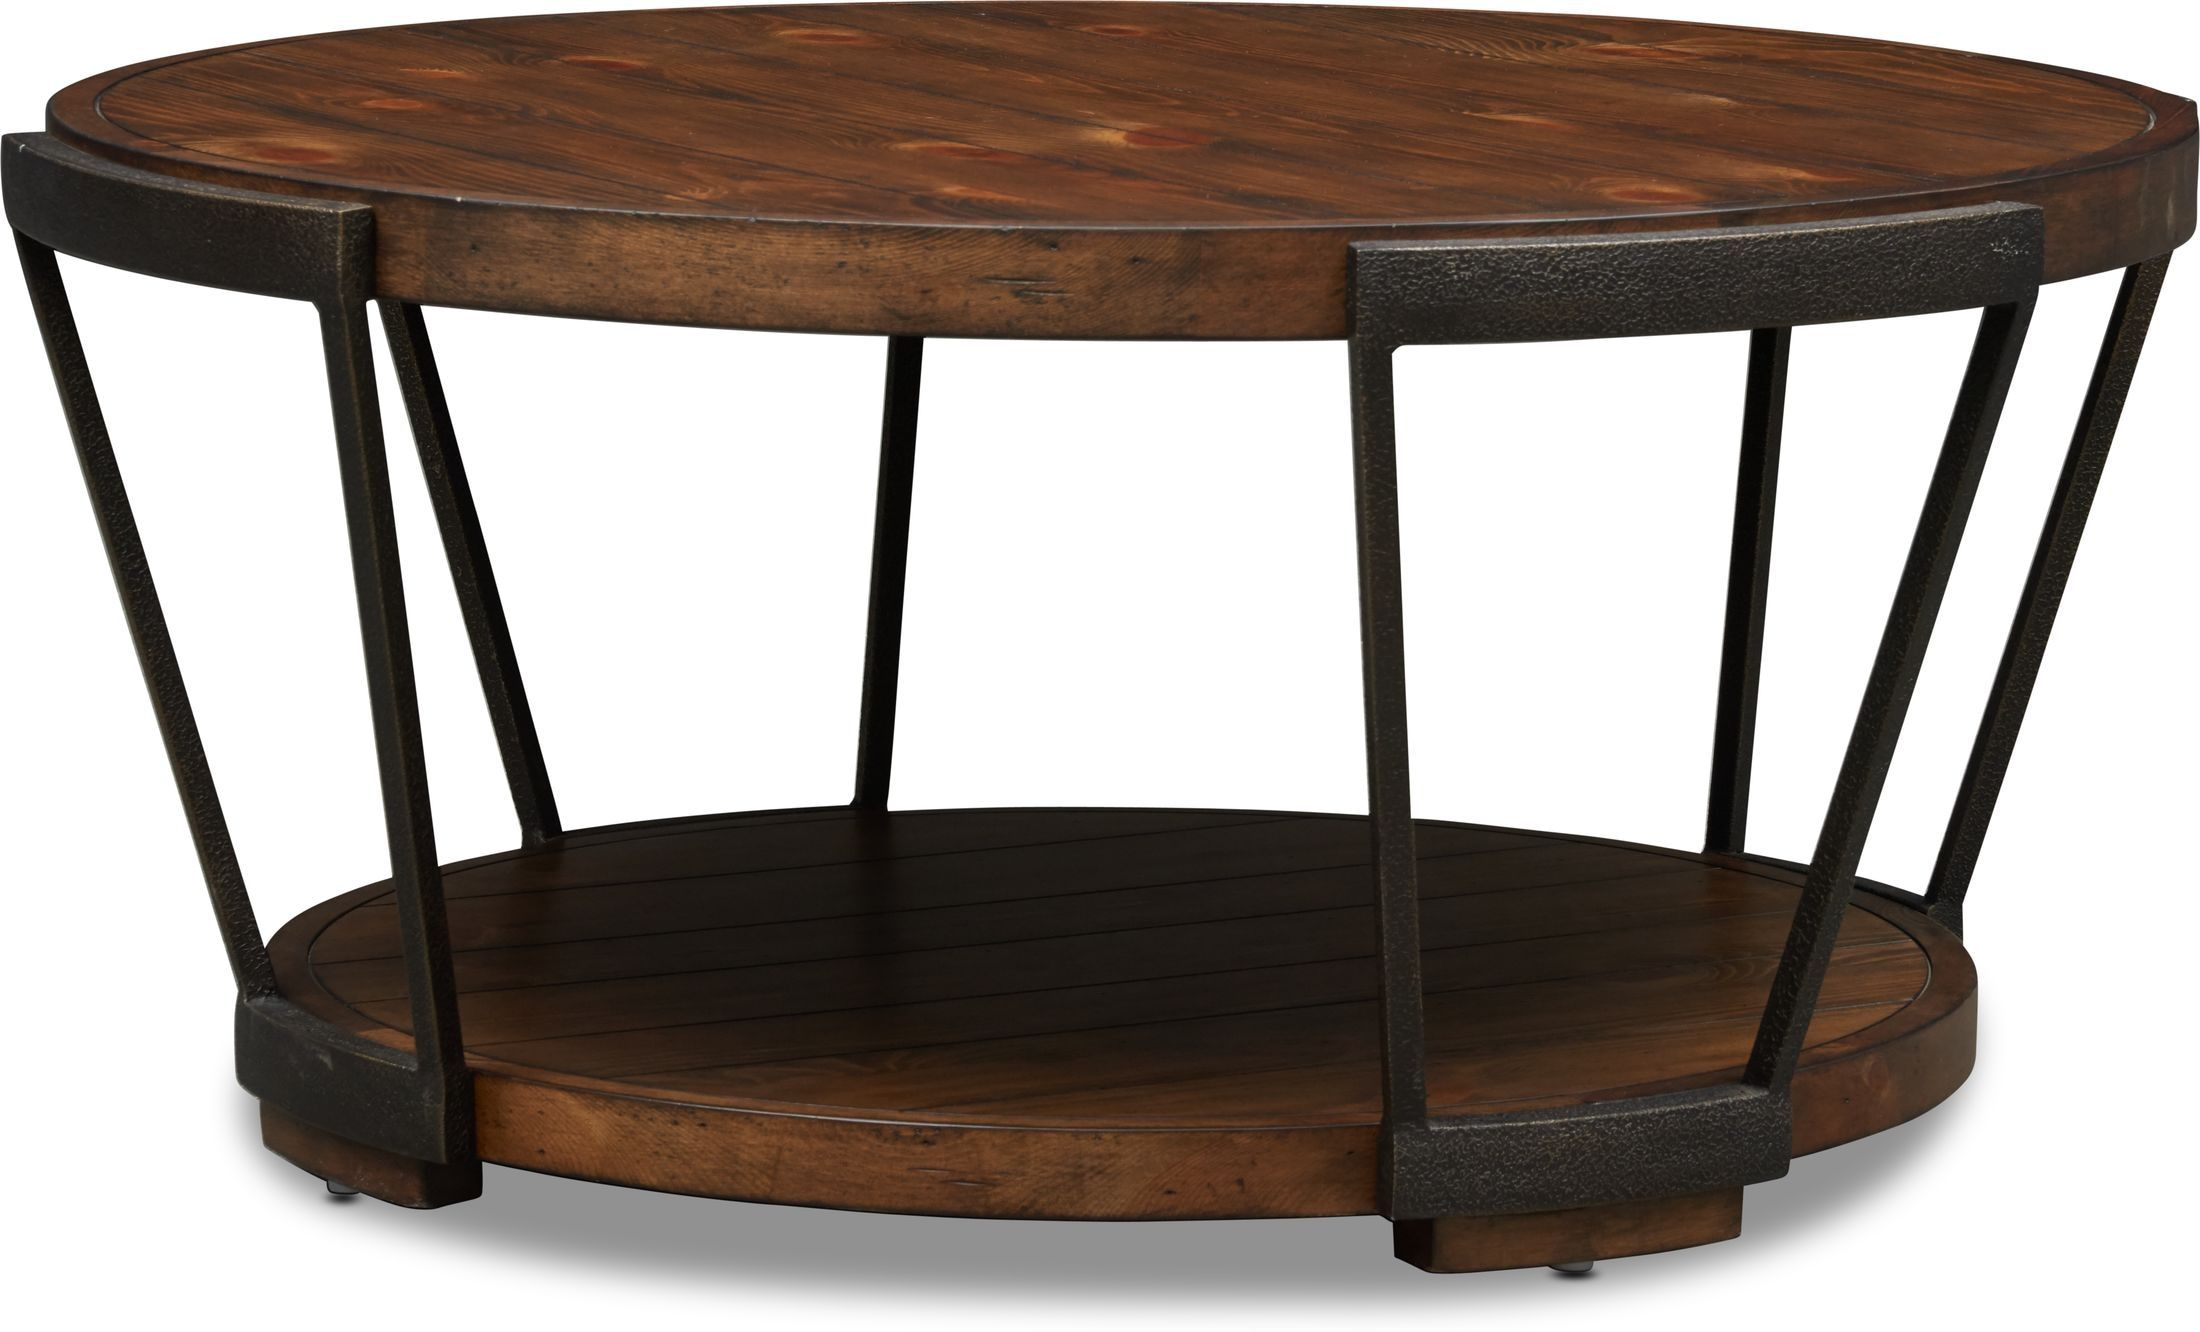 Ocala Coffee Table In 2021 Value City Furniture Coffee Table City Furniture [ 1332 x 2200 Pixel ]